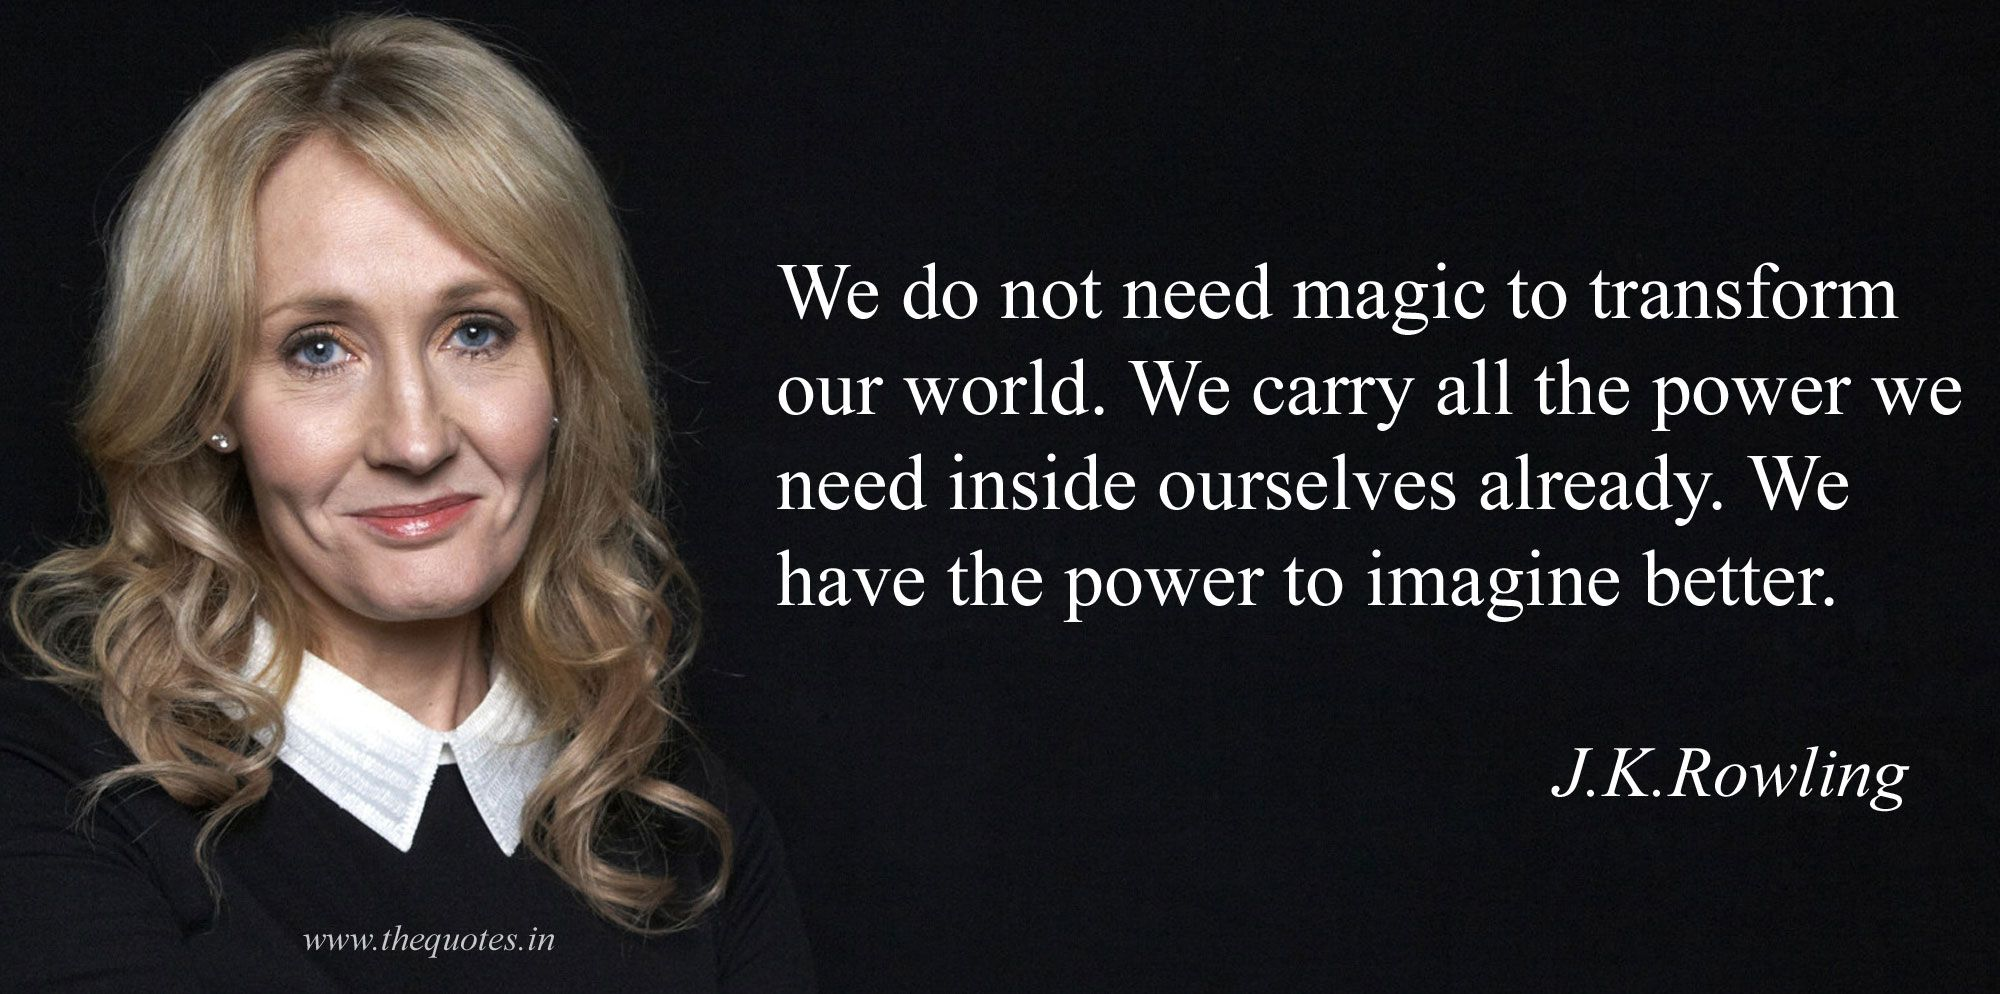 we carry the power to change the world.#jkrowling #harrypotter